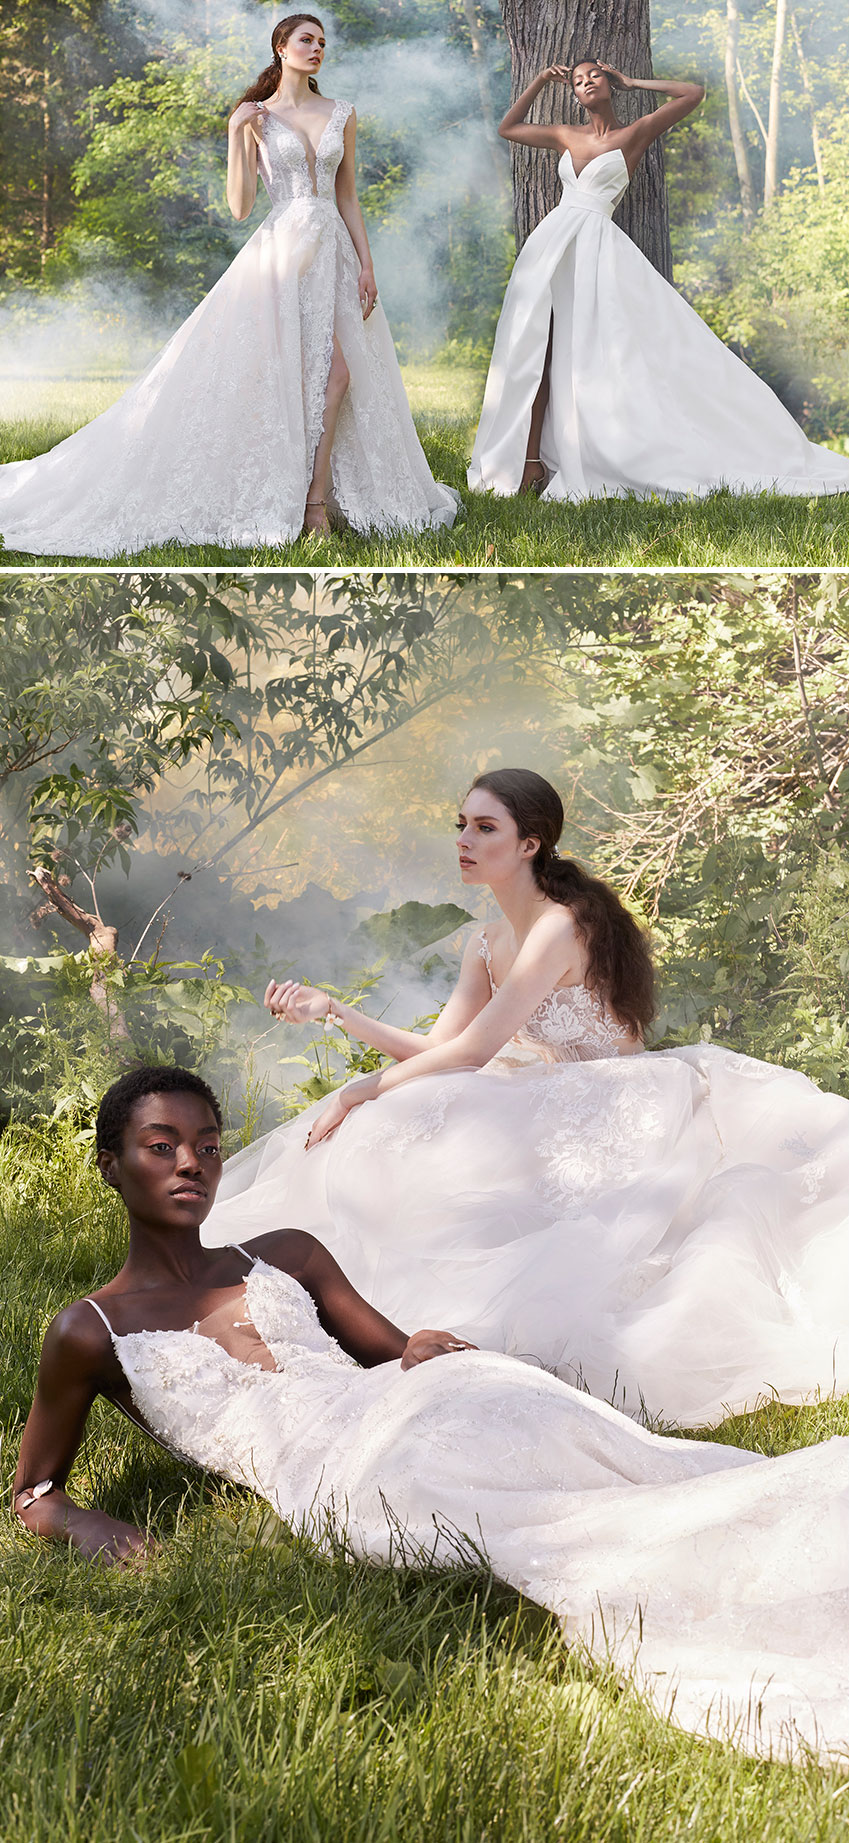 Ines Di Santo Spring 2021 Couture bridal collection is featured in the most popular wedding blog Perfect Wedding Magazine